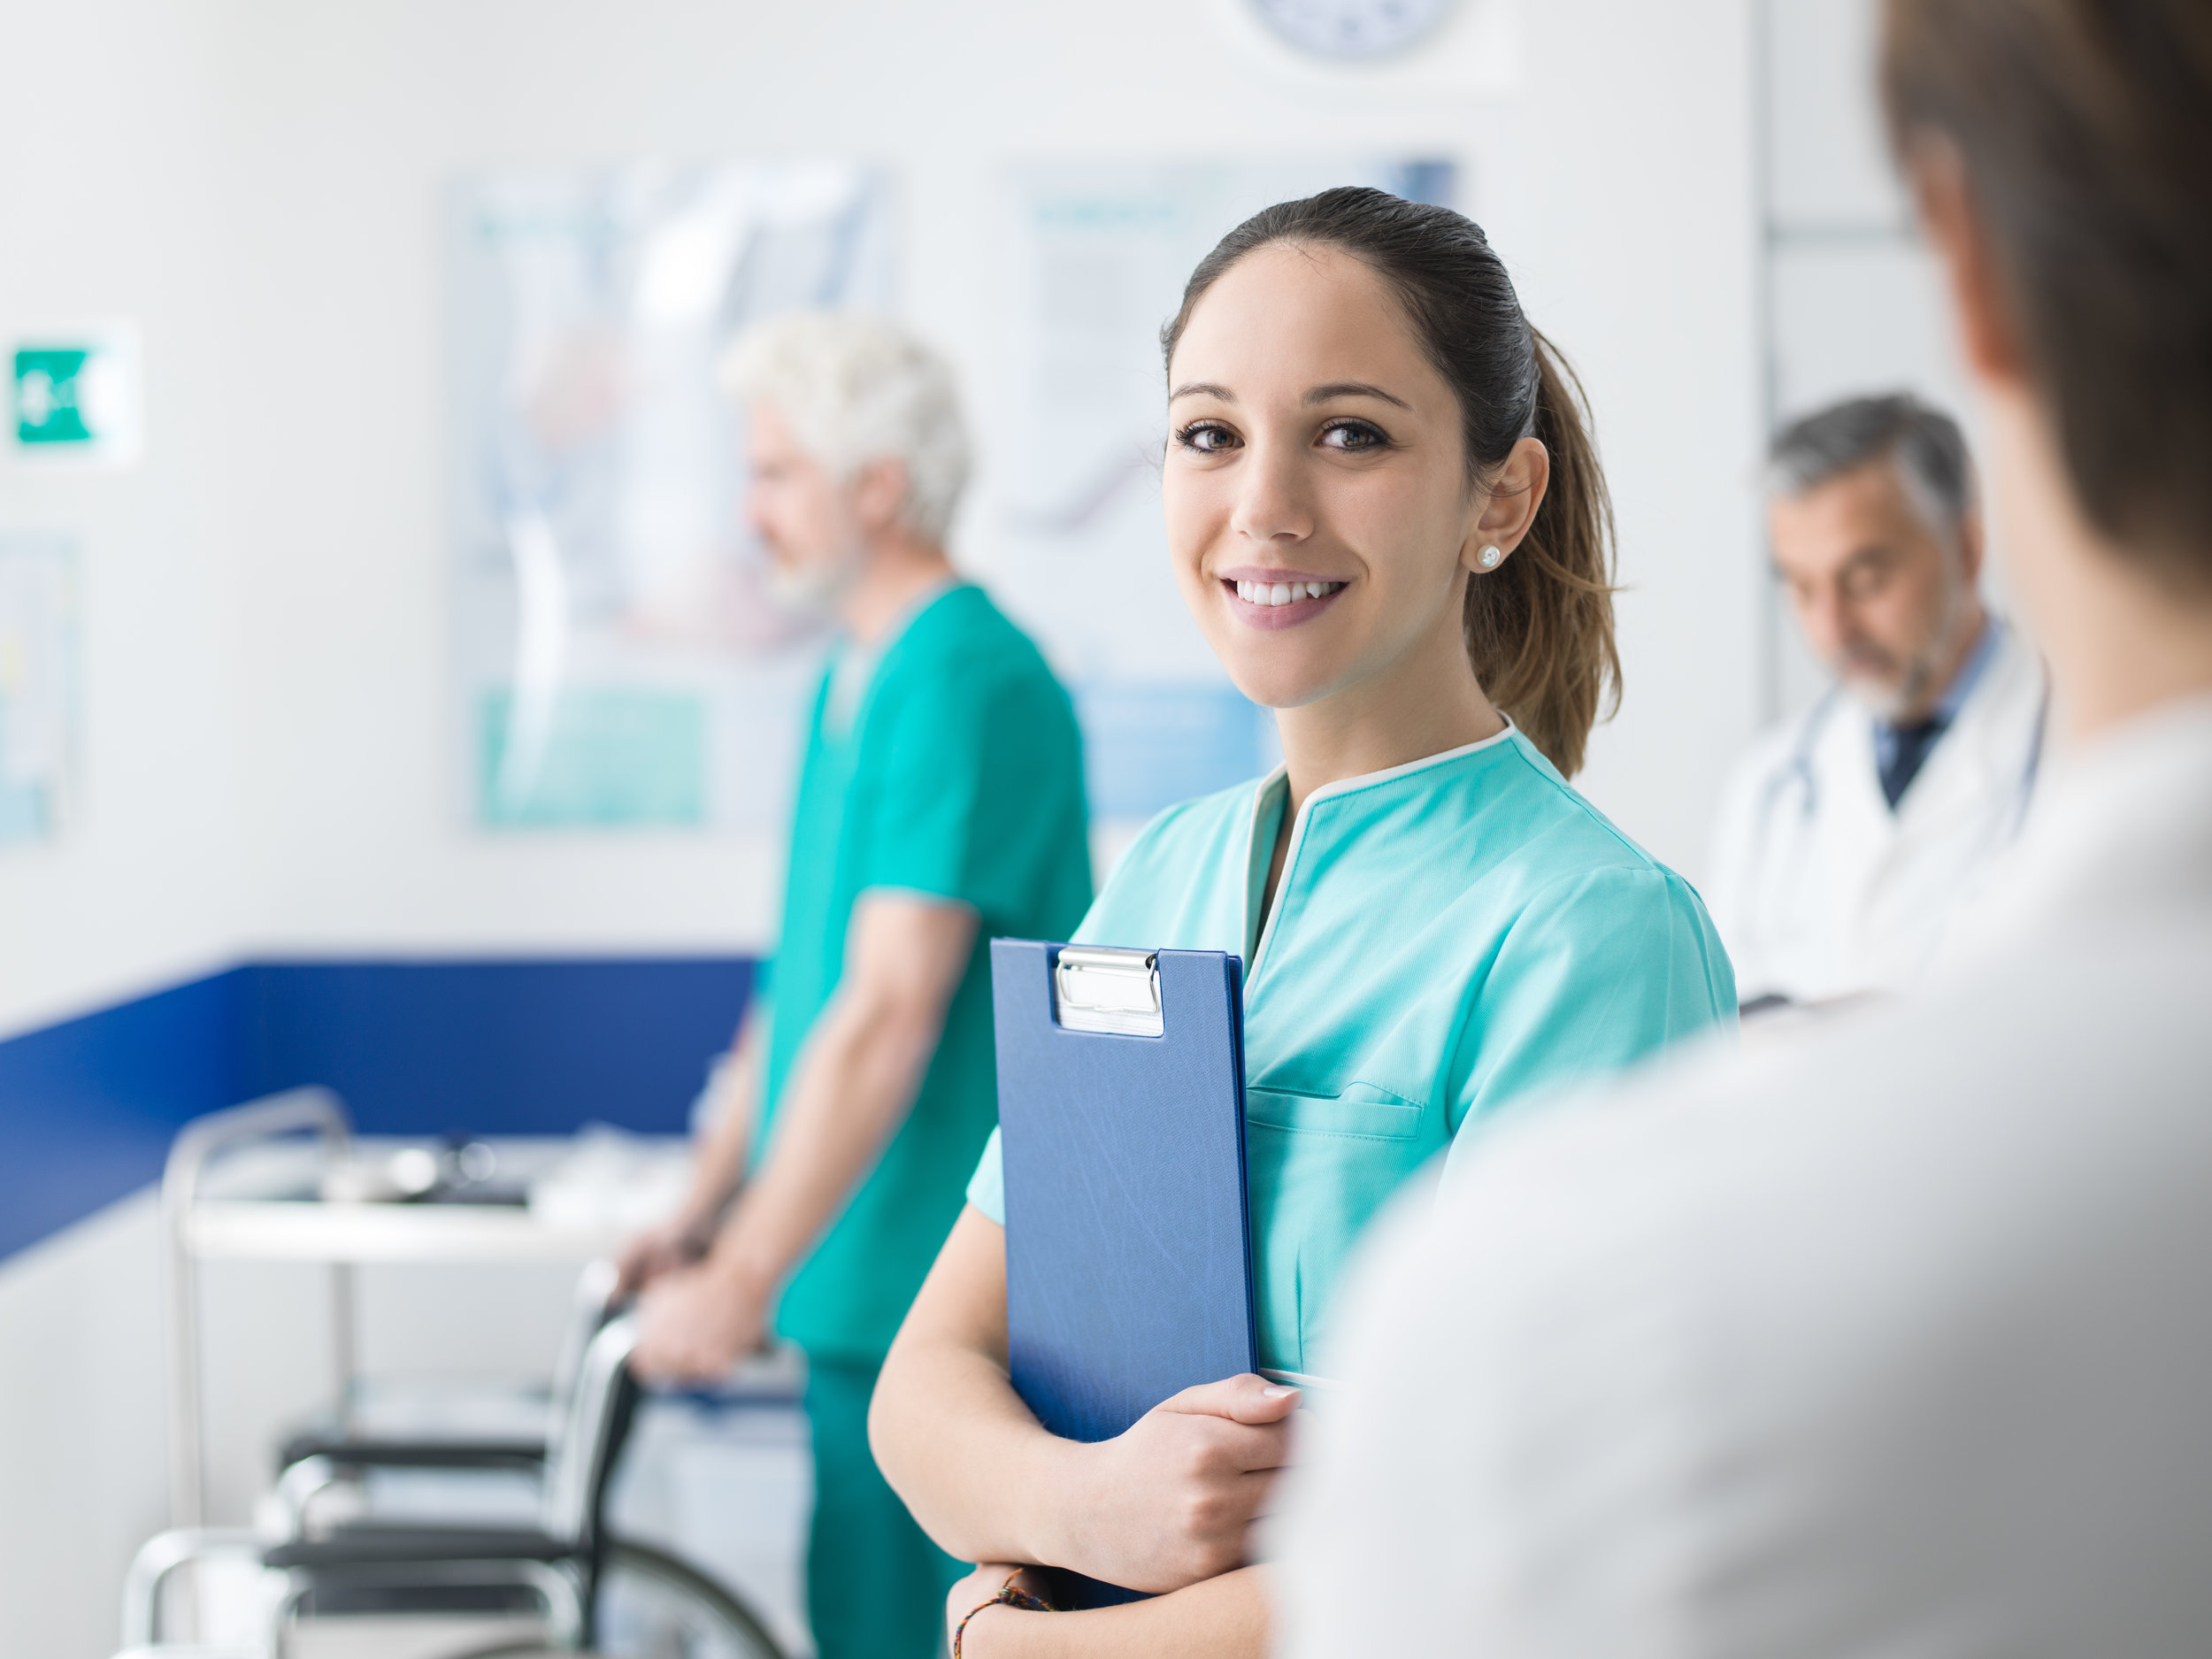 young-nurse-working-at-the-hospital-7Y2DC34.jpg